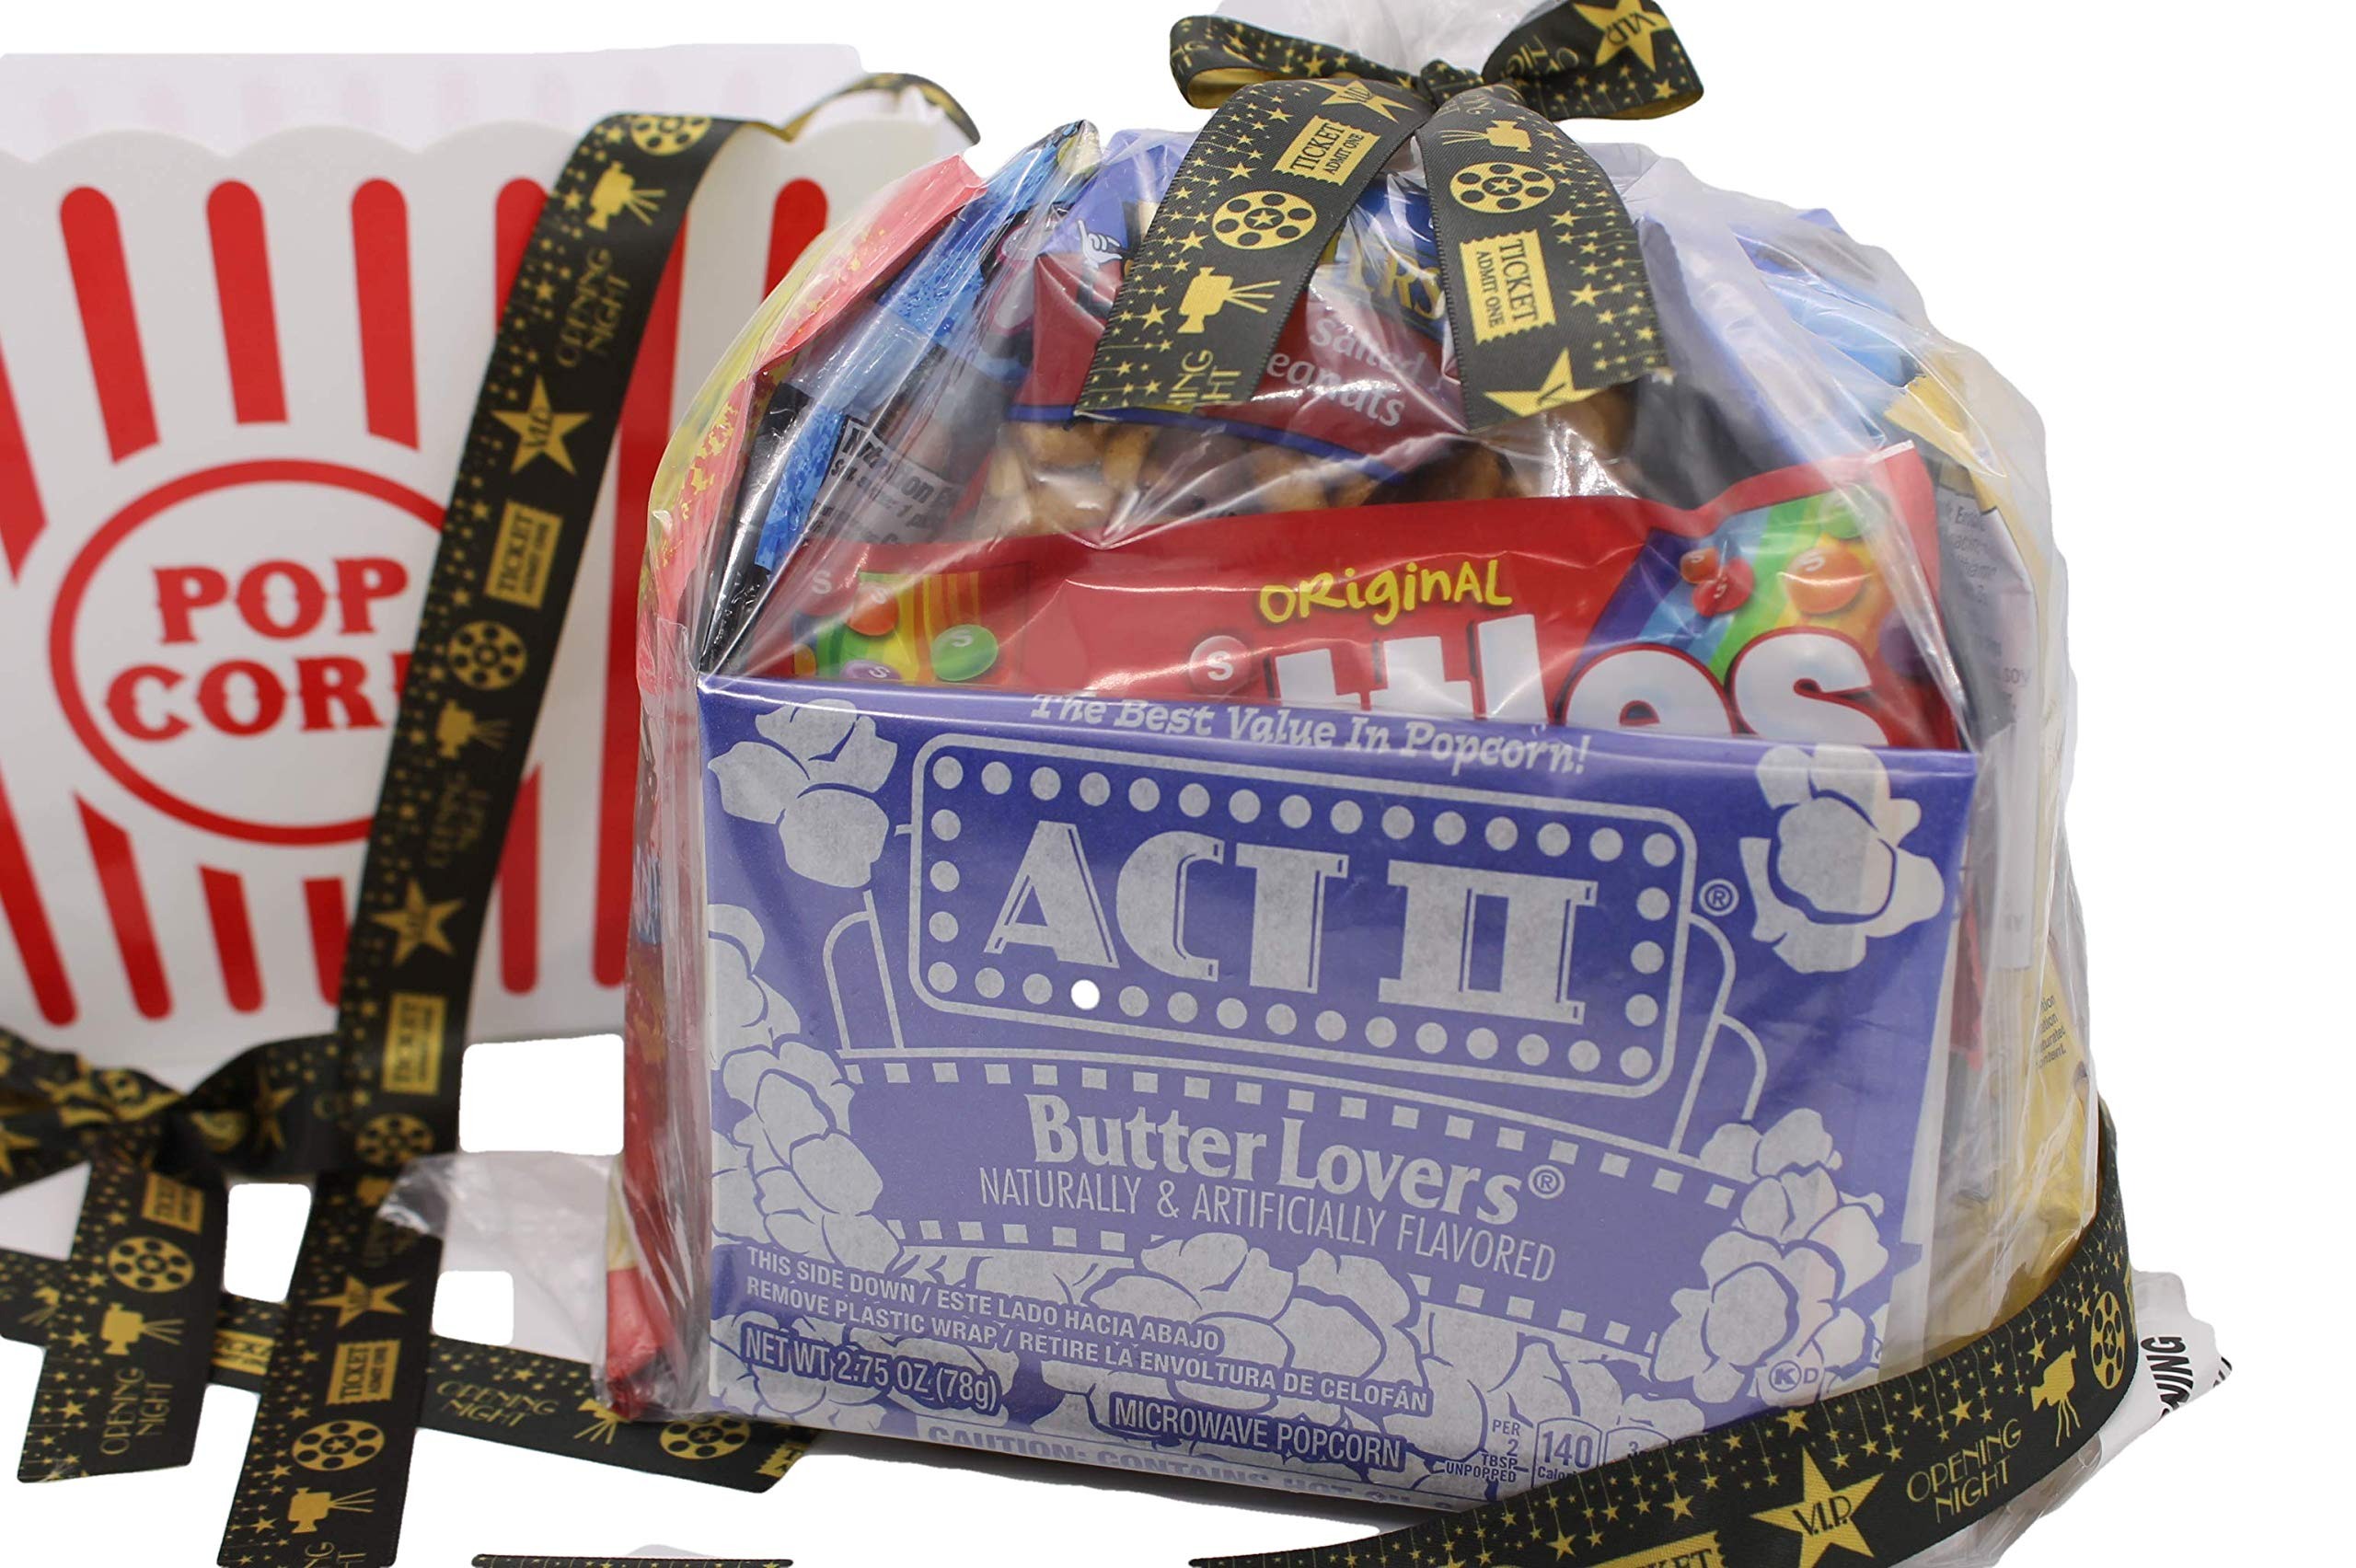 MOVIE NIGHT GIFT BASKET 30 Of Your Favorite Popcorn, Candy Cookies Crackers Perfect Birthday Box Holiday Surprised College Care Package Kids Party Family Movie Night Or A Special Date Night by Tiny Timz (Image #6)